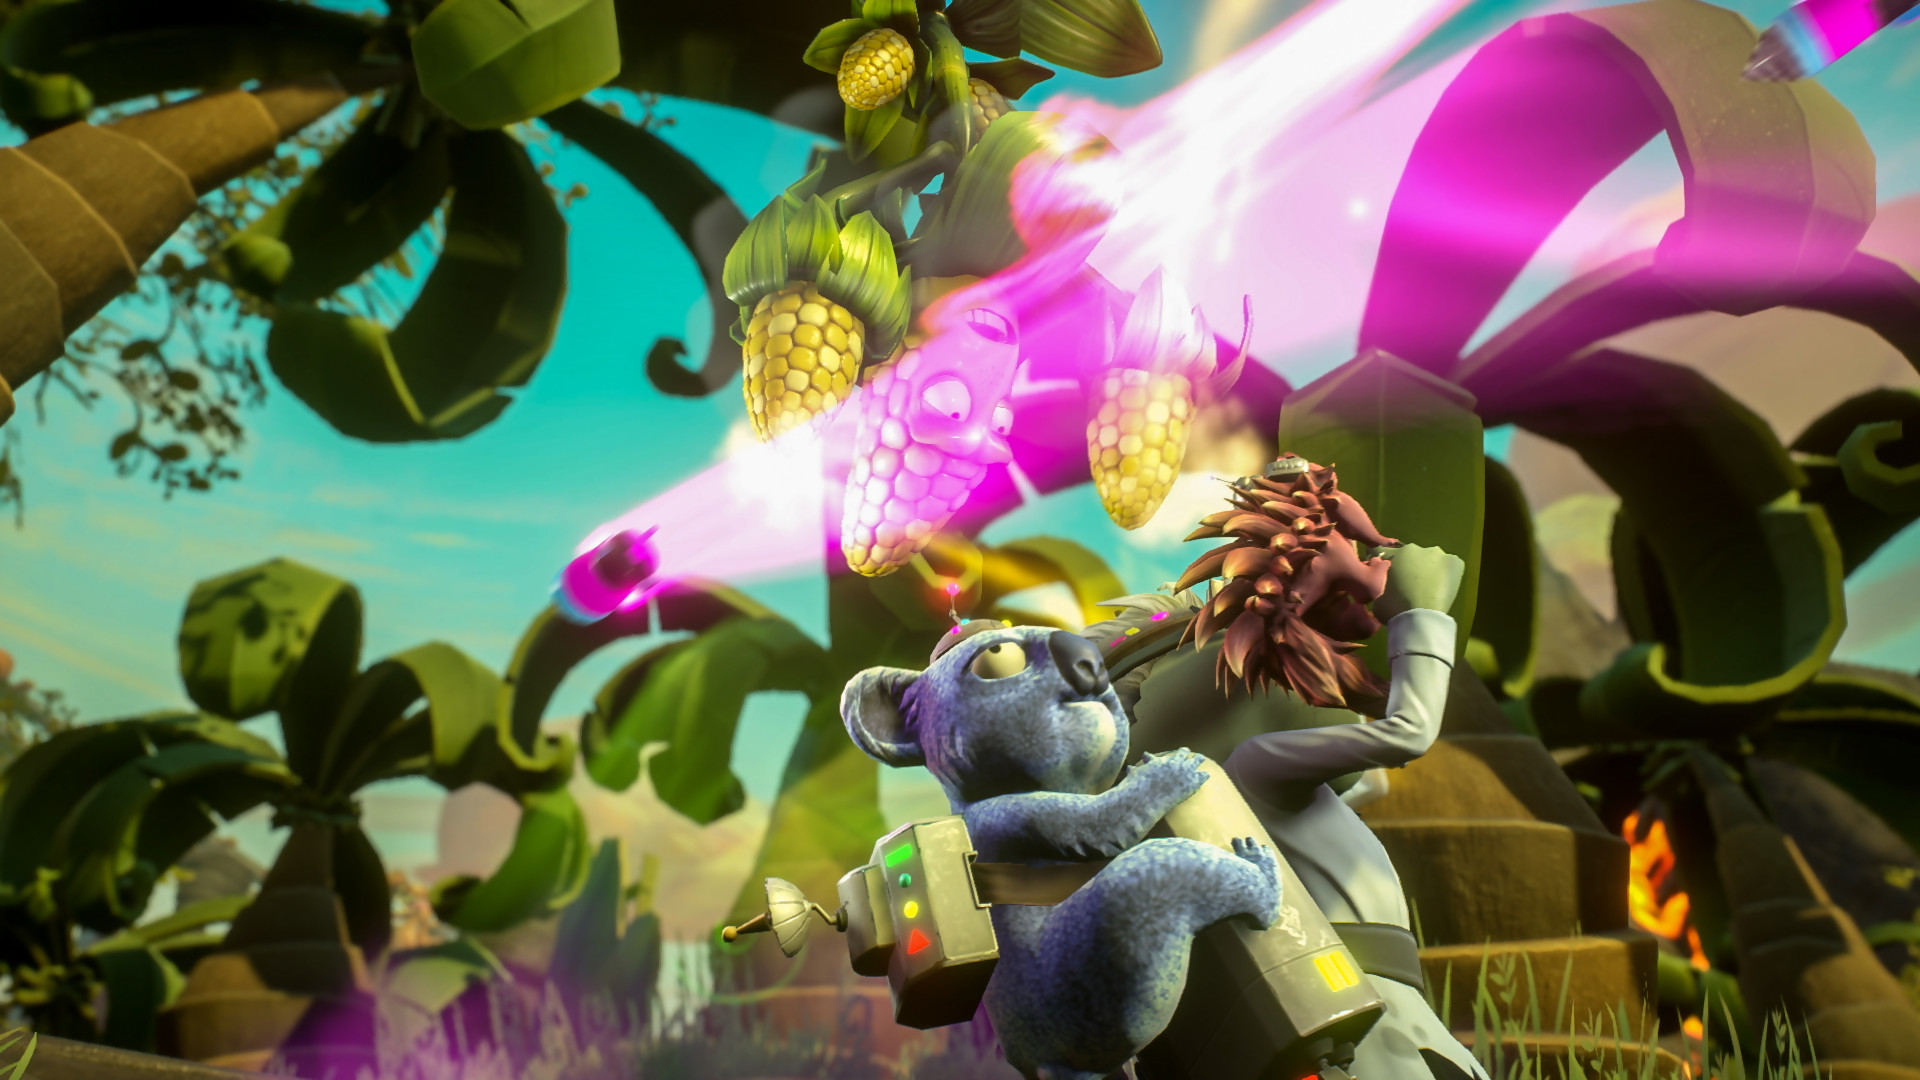 Plants vs zombies garden warfare 2 des nouvelles images for Plante vs zombie garden warfare 2